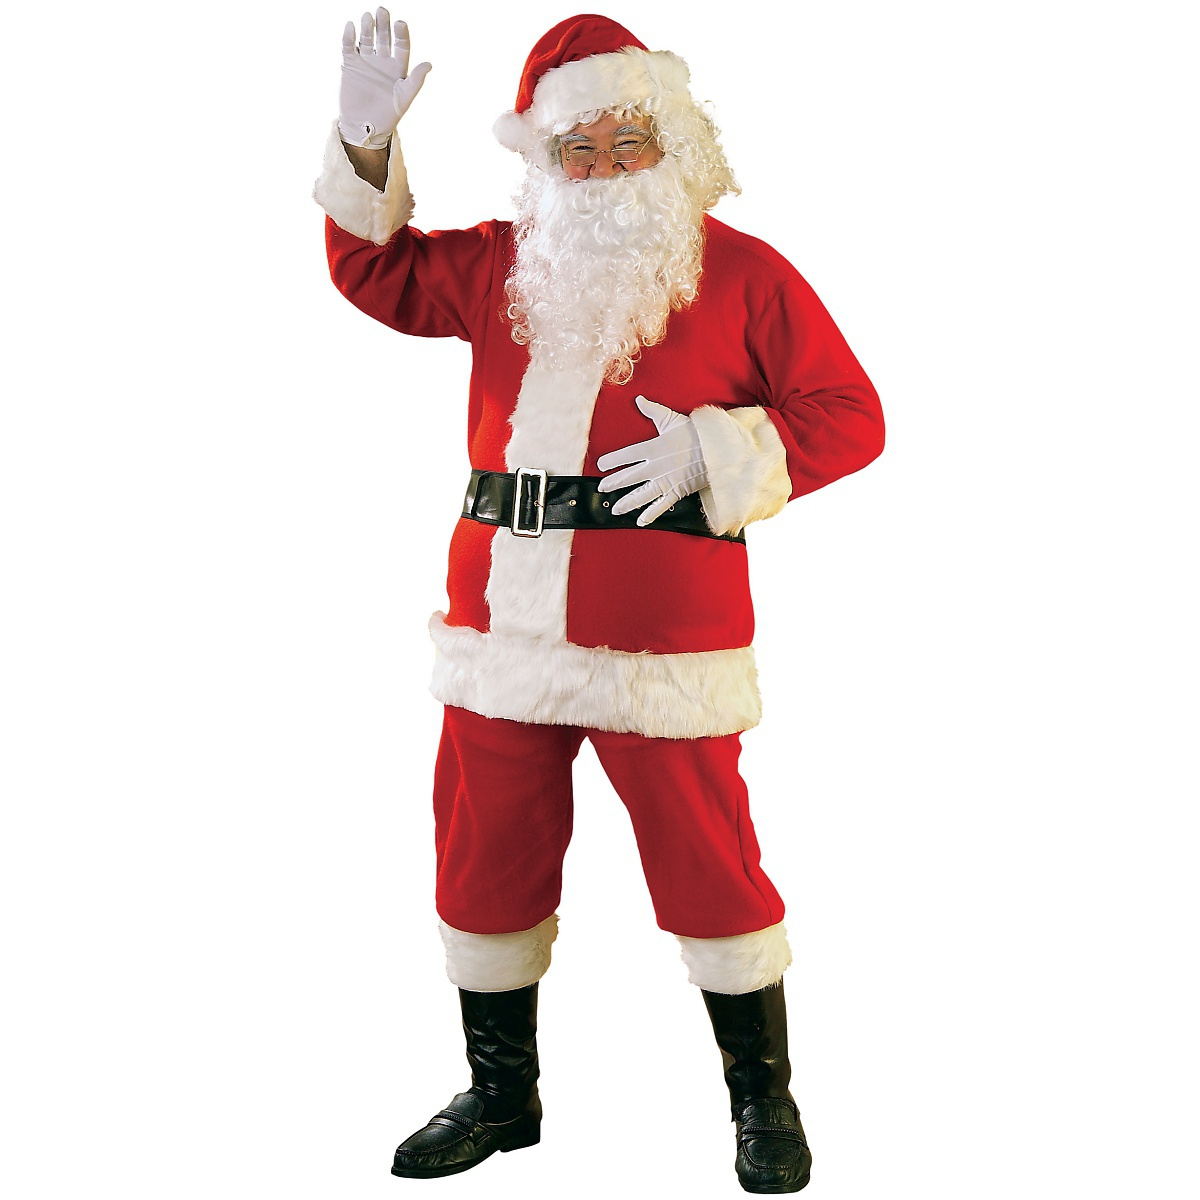 Rubie's Costume Co Flannel Santa Suit Adult Mens Lightweight Economy Claus Christmas Costume at Sears.com